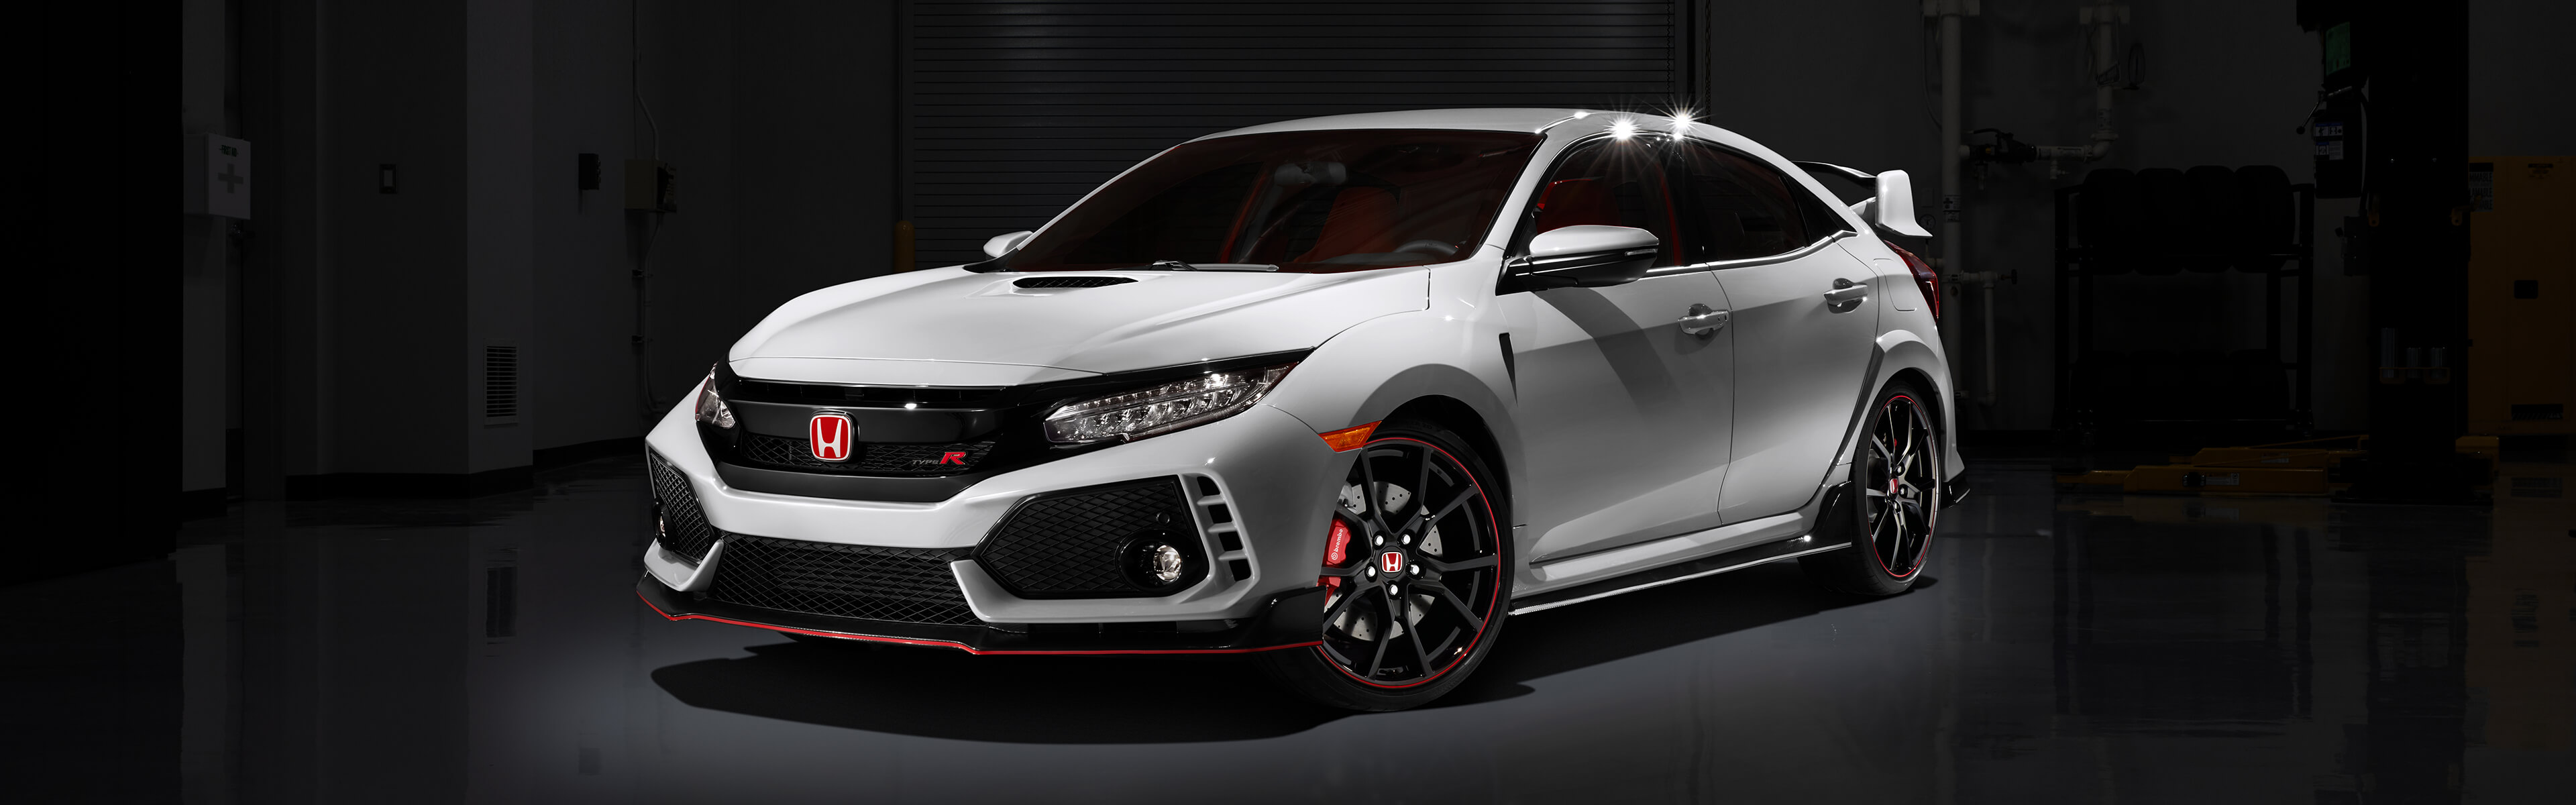 My Civic Type R Model Page Feature